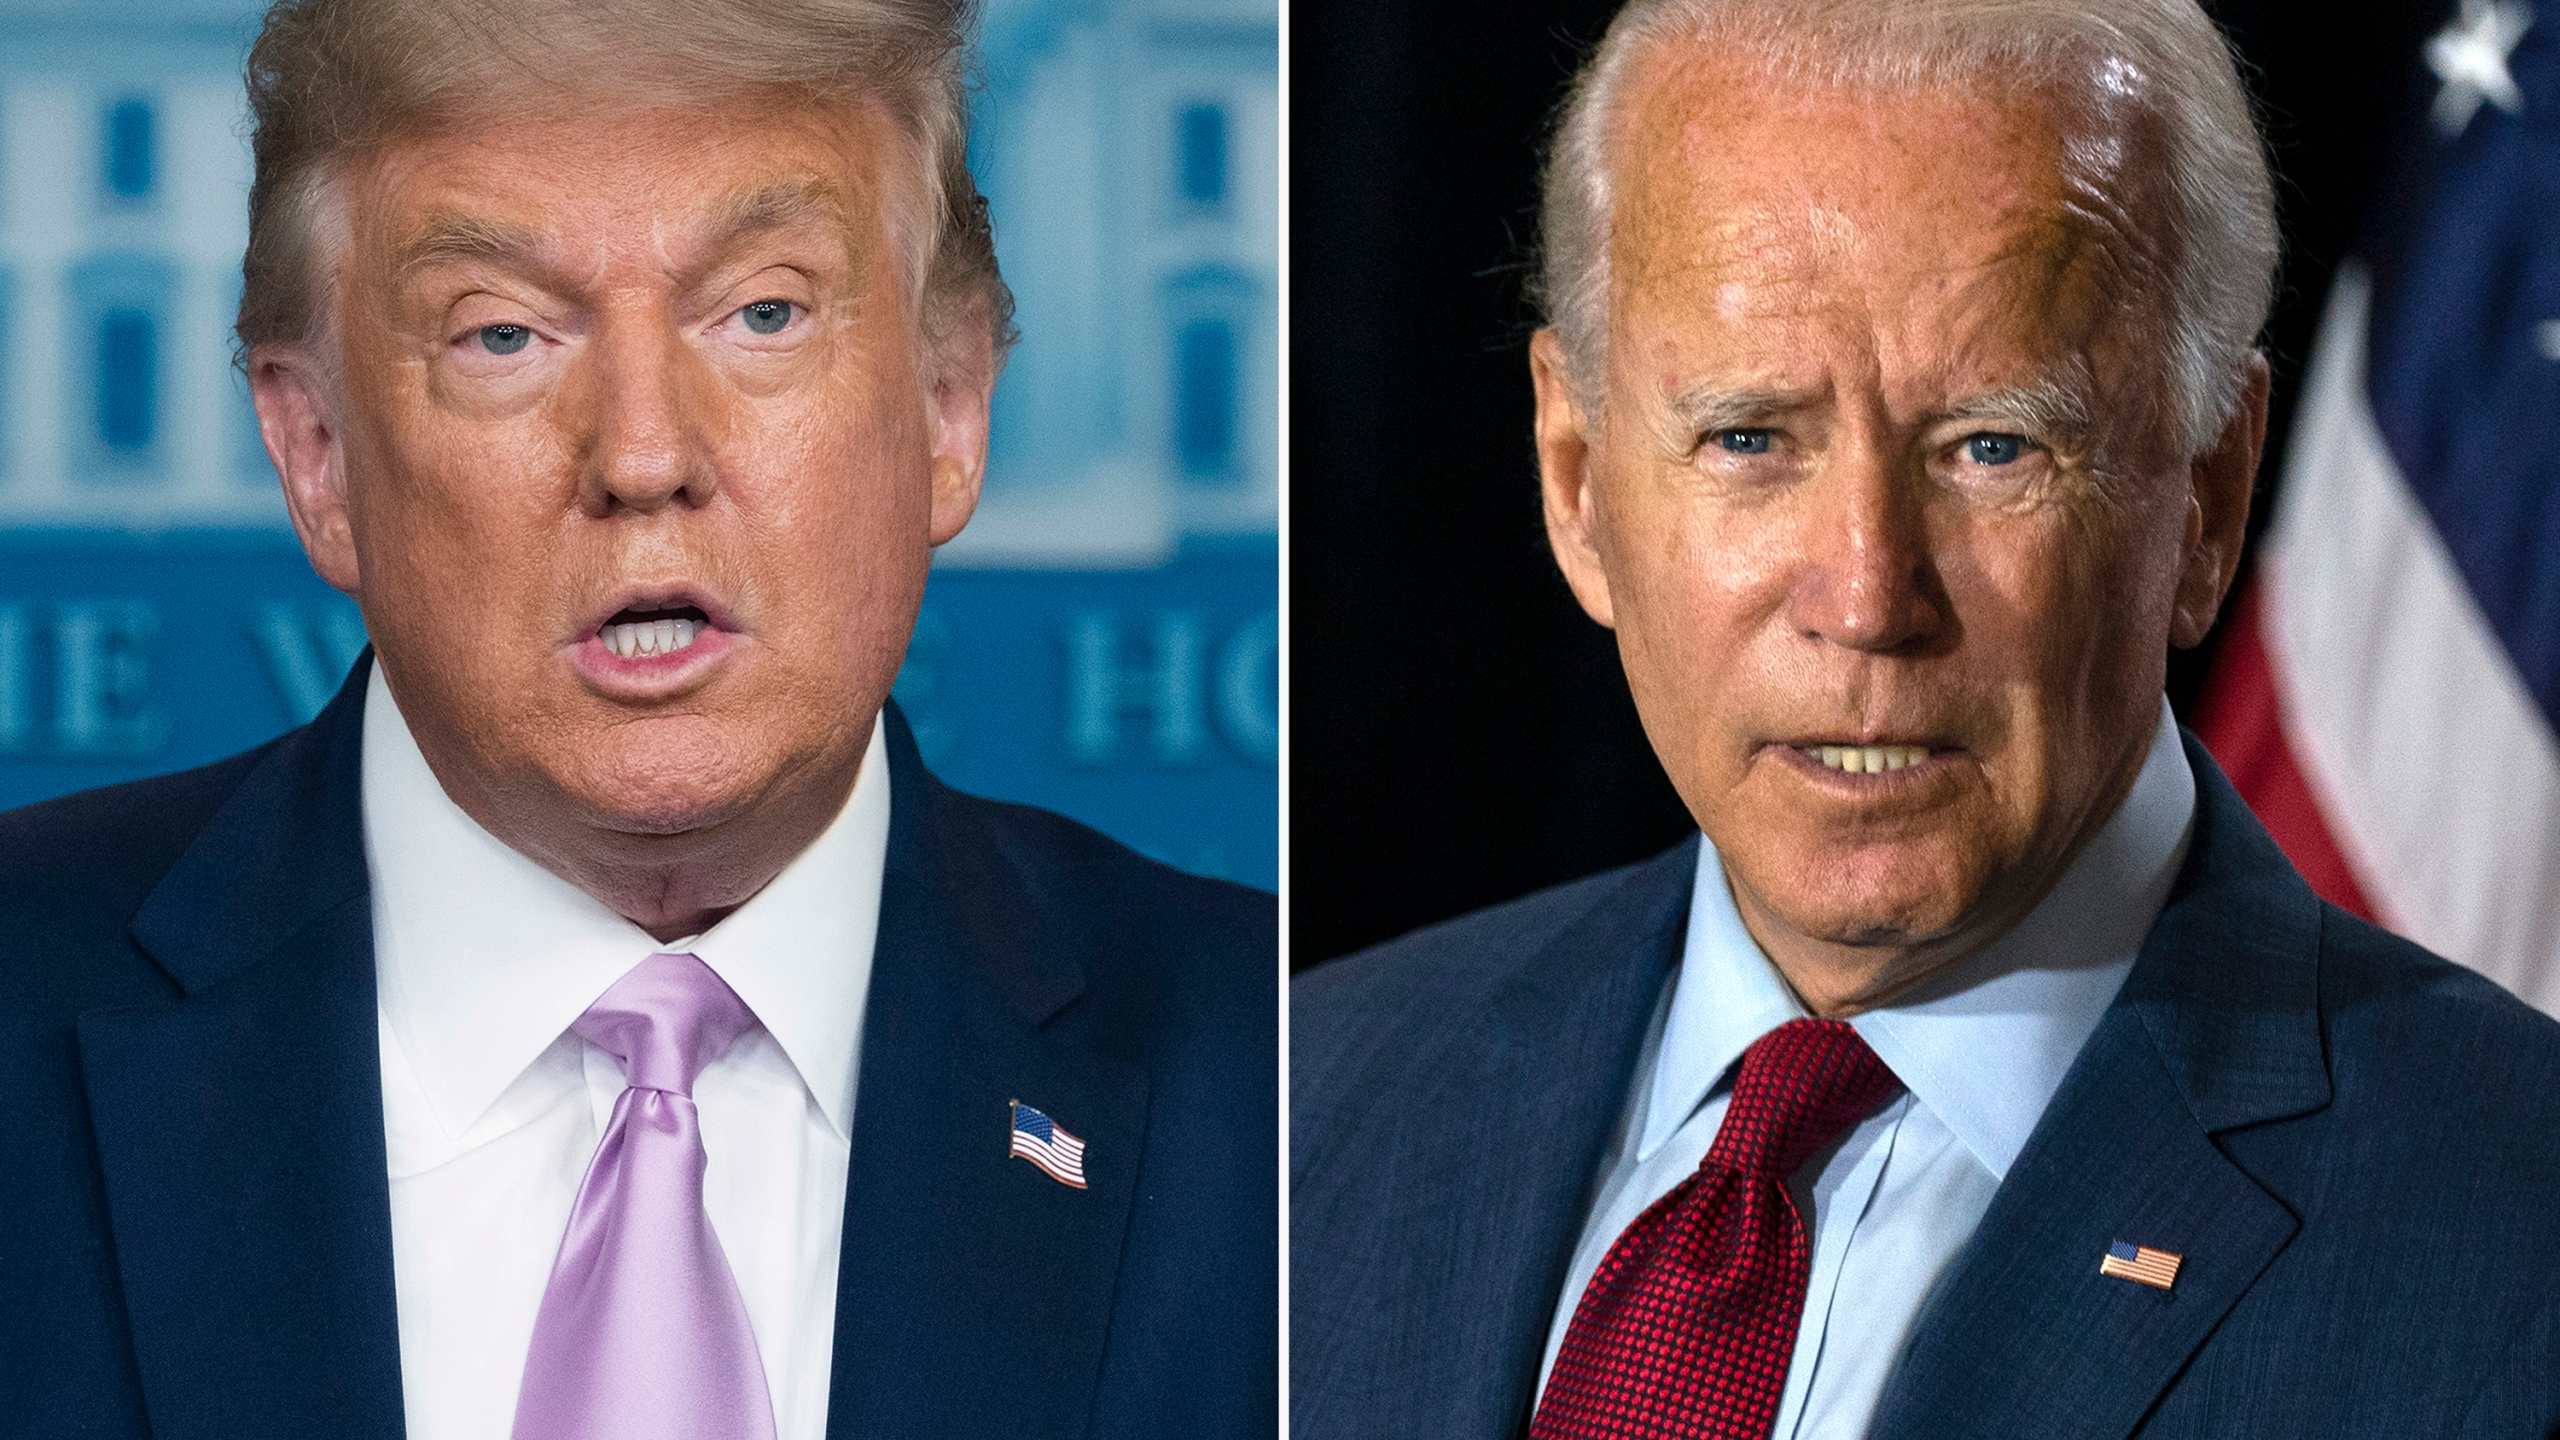 President Donald Trump, left, speaks at a news conference on Aug. 11, 2020, in Washington and Democratic presidential candidate former Vice President Joe Biden speaks in Wilmington, Del. on Aug. 13, 2020. (AP Photo)